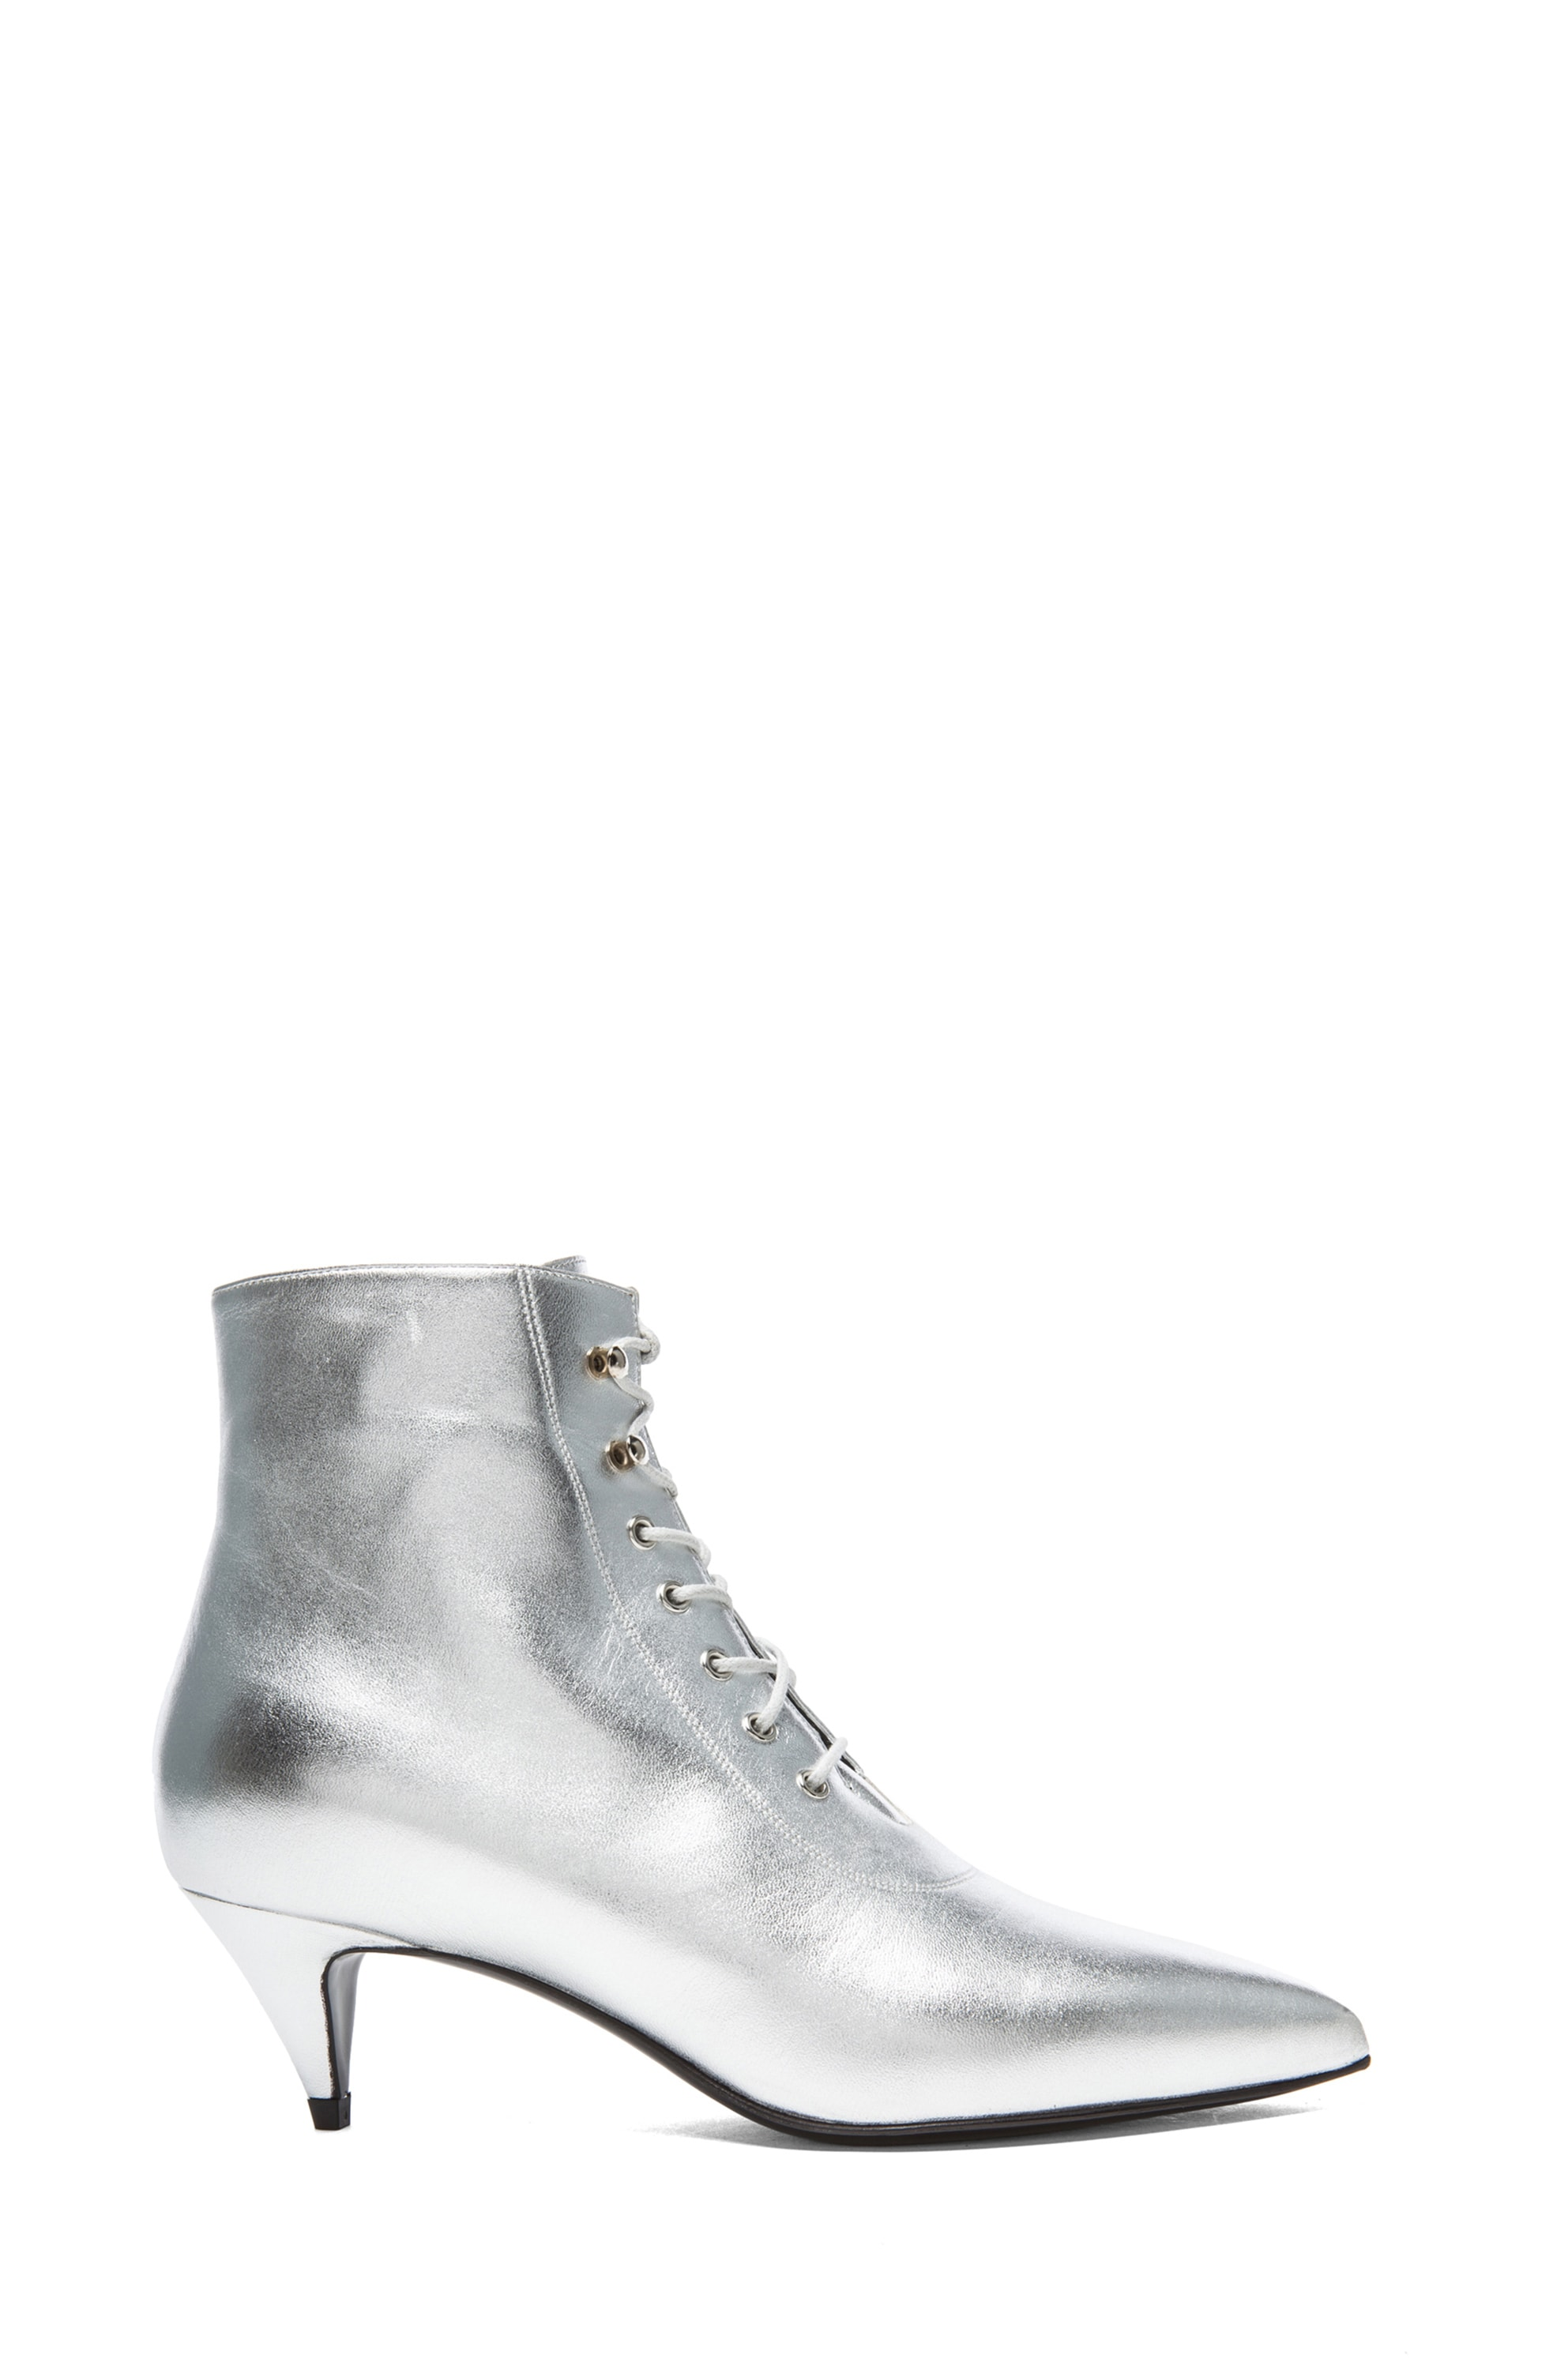 Image 1 of Saint Laurent Cat Lambskin Leather Booties in Silver